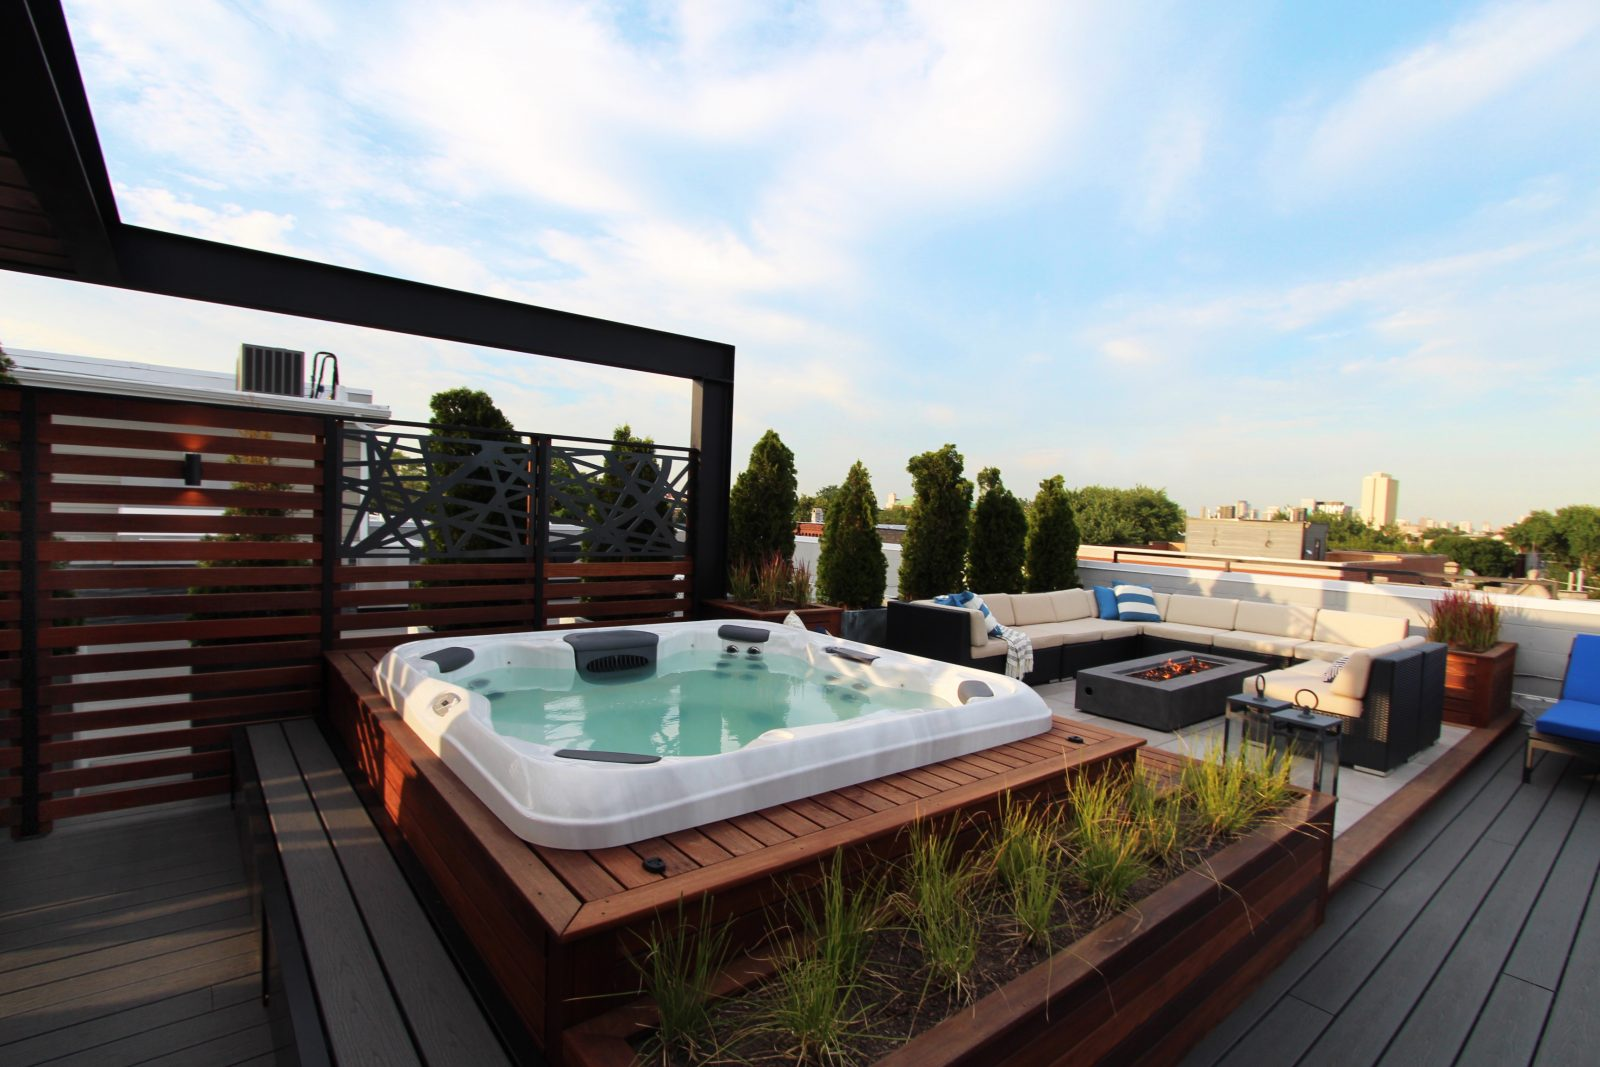 Ukrainian Village House Roof Deck Hot Tub In Chicago